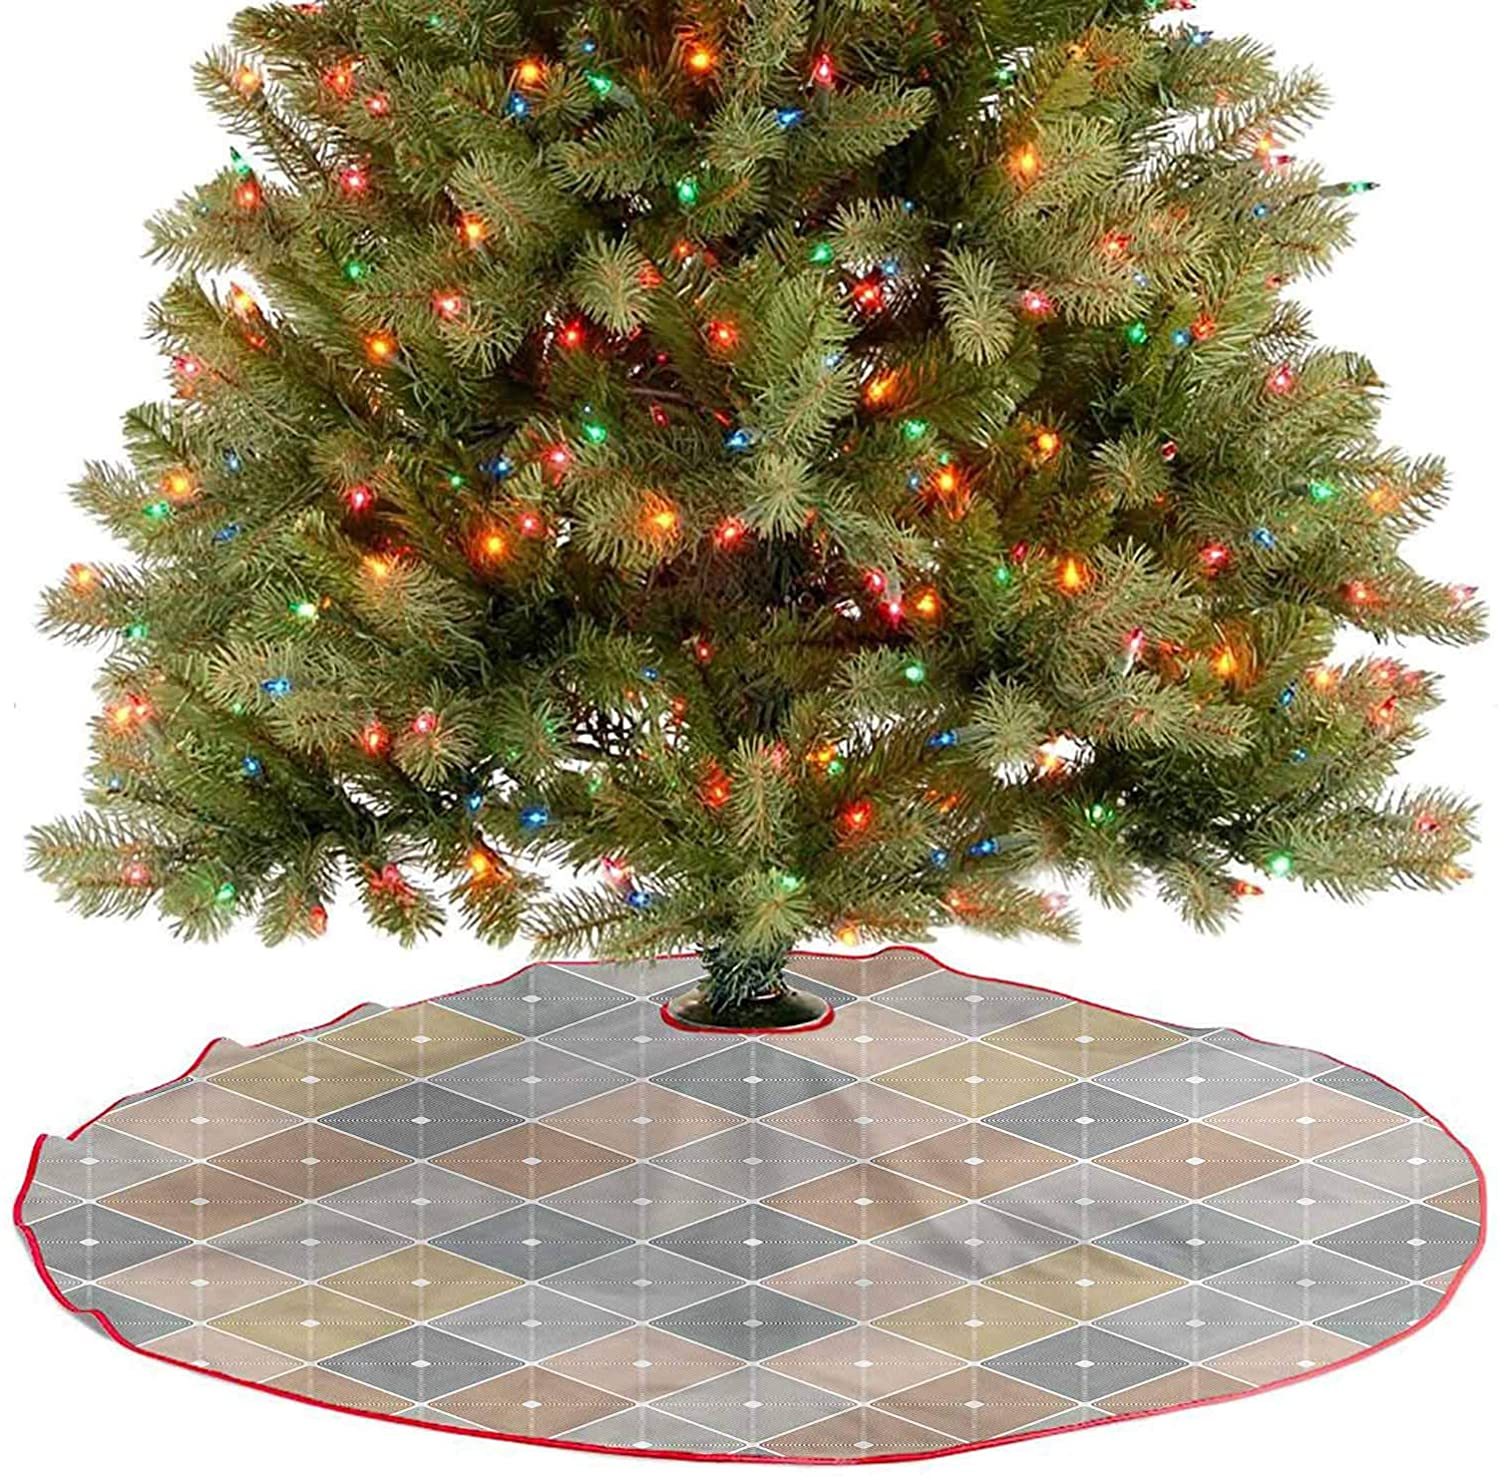 Christmas Tree Skirt Geometric Rhombuses Xmas Tree Holiday Decorations for New Year Party Accessories Diameter - 48 Inch